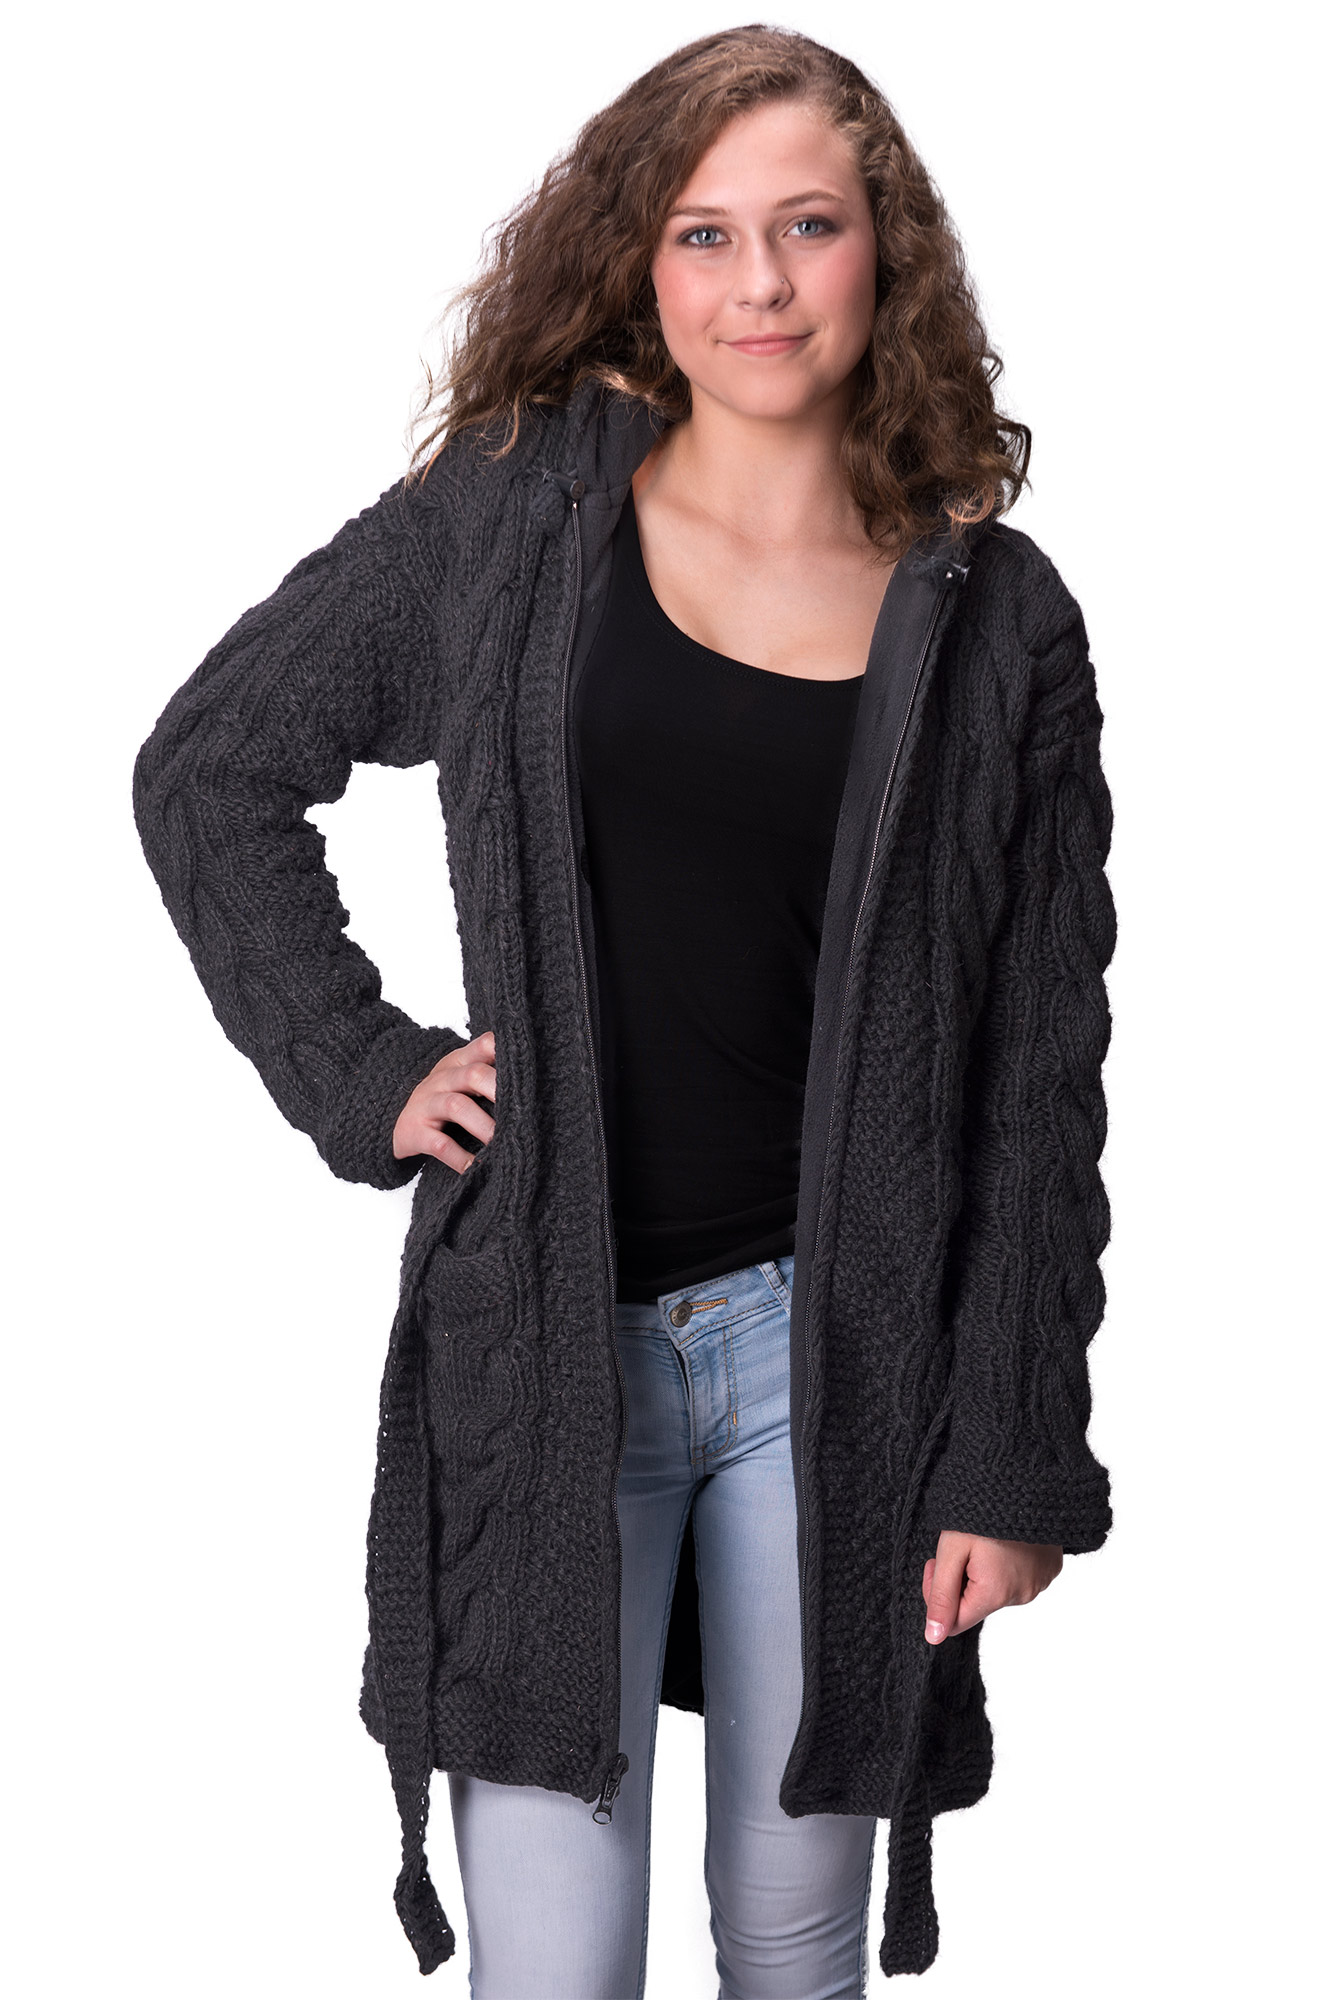 Himalayan Mountain Jacket Full Length Cable Knit, Black